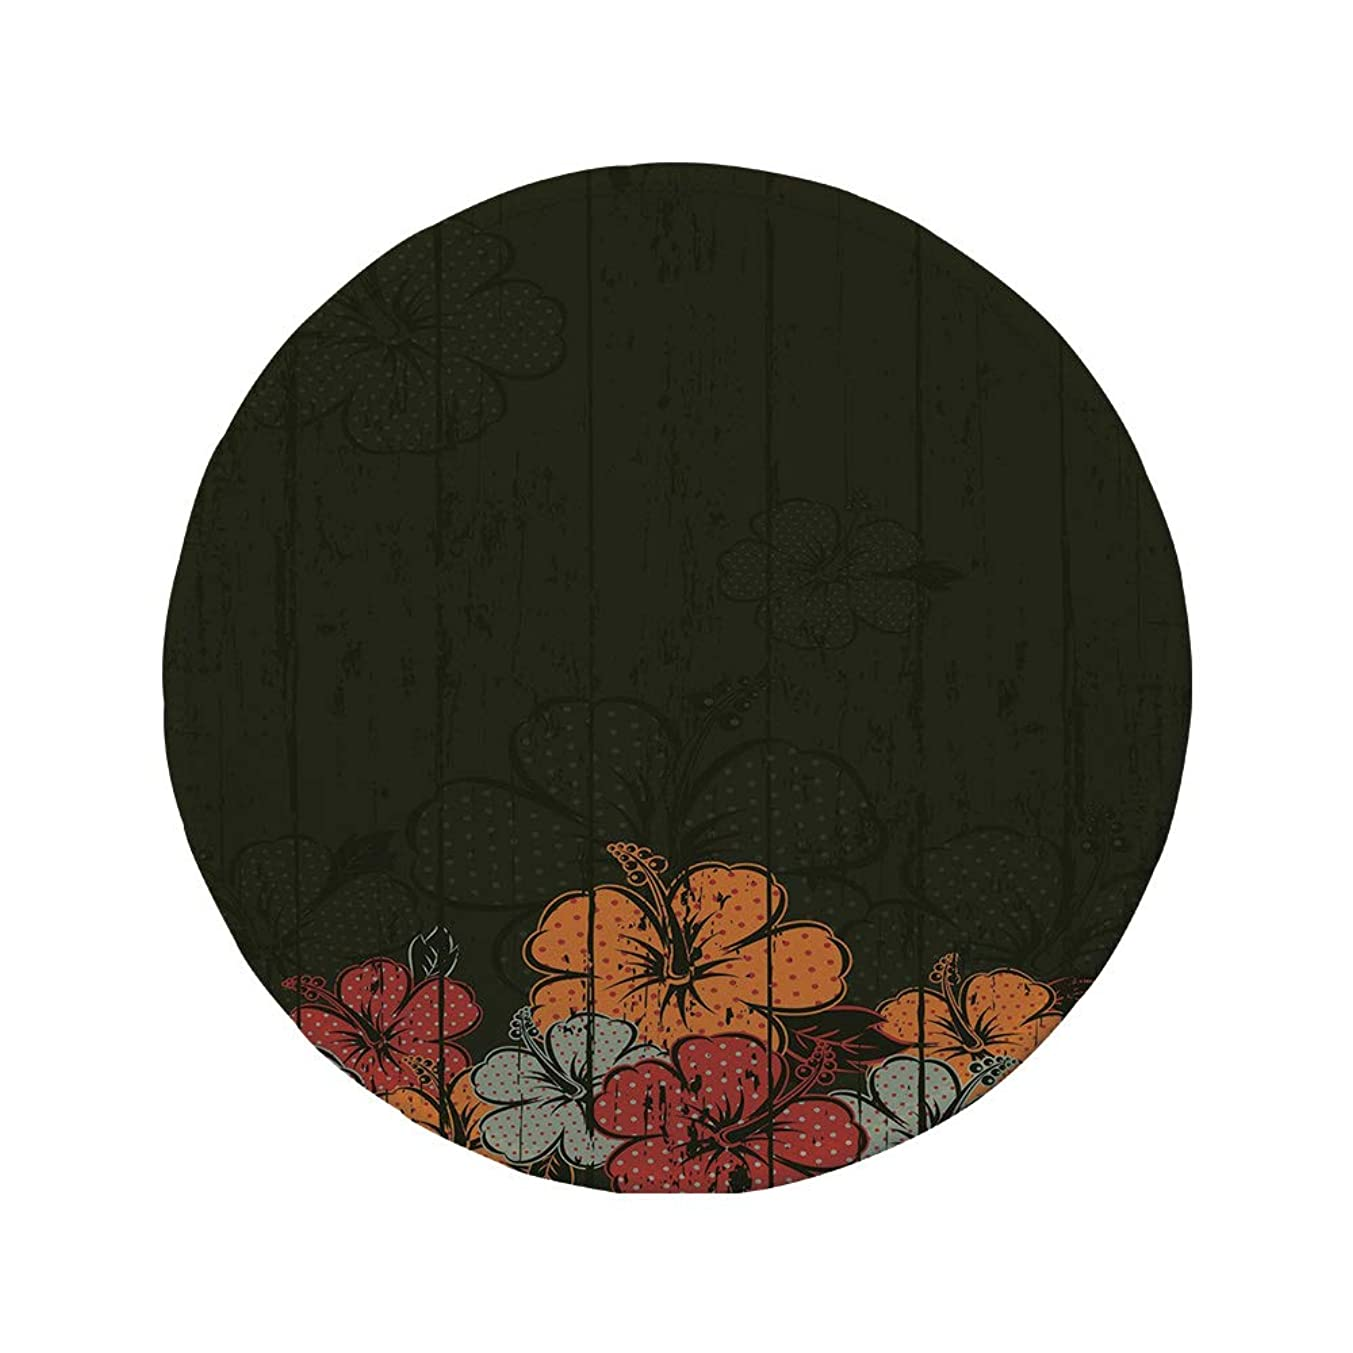 Non-Slip Rubber Round Mouse Pad,Floral,Abstract Wooden Backdrop with Hawaiian Romantic Flowers Buds Blooms Leaves,Amber Red Army Green,11.8